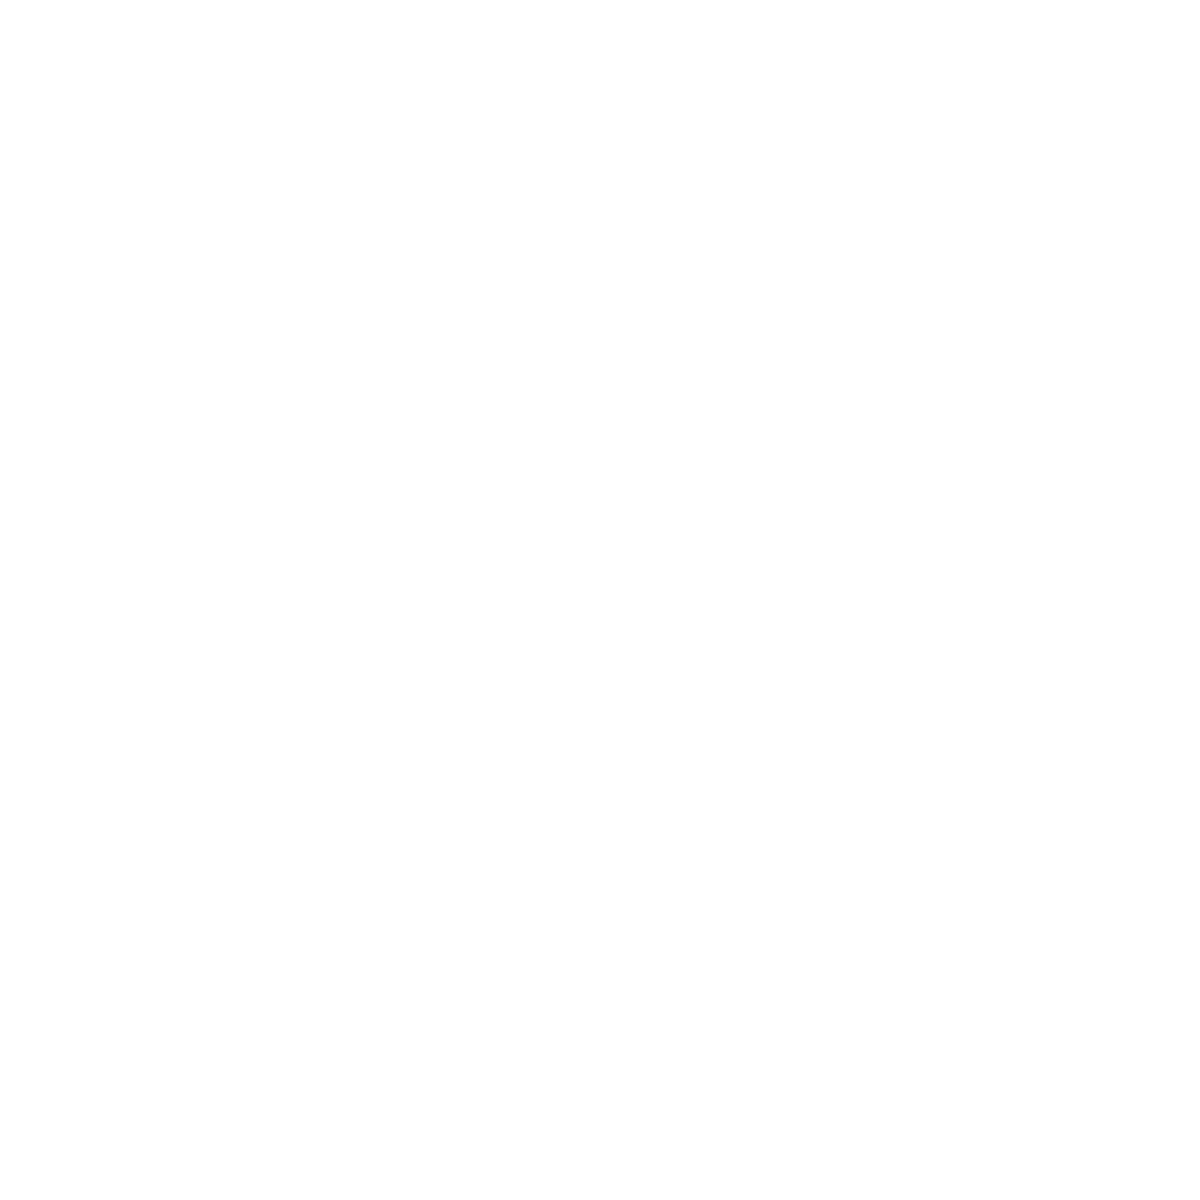 donibrown-logo-white